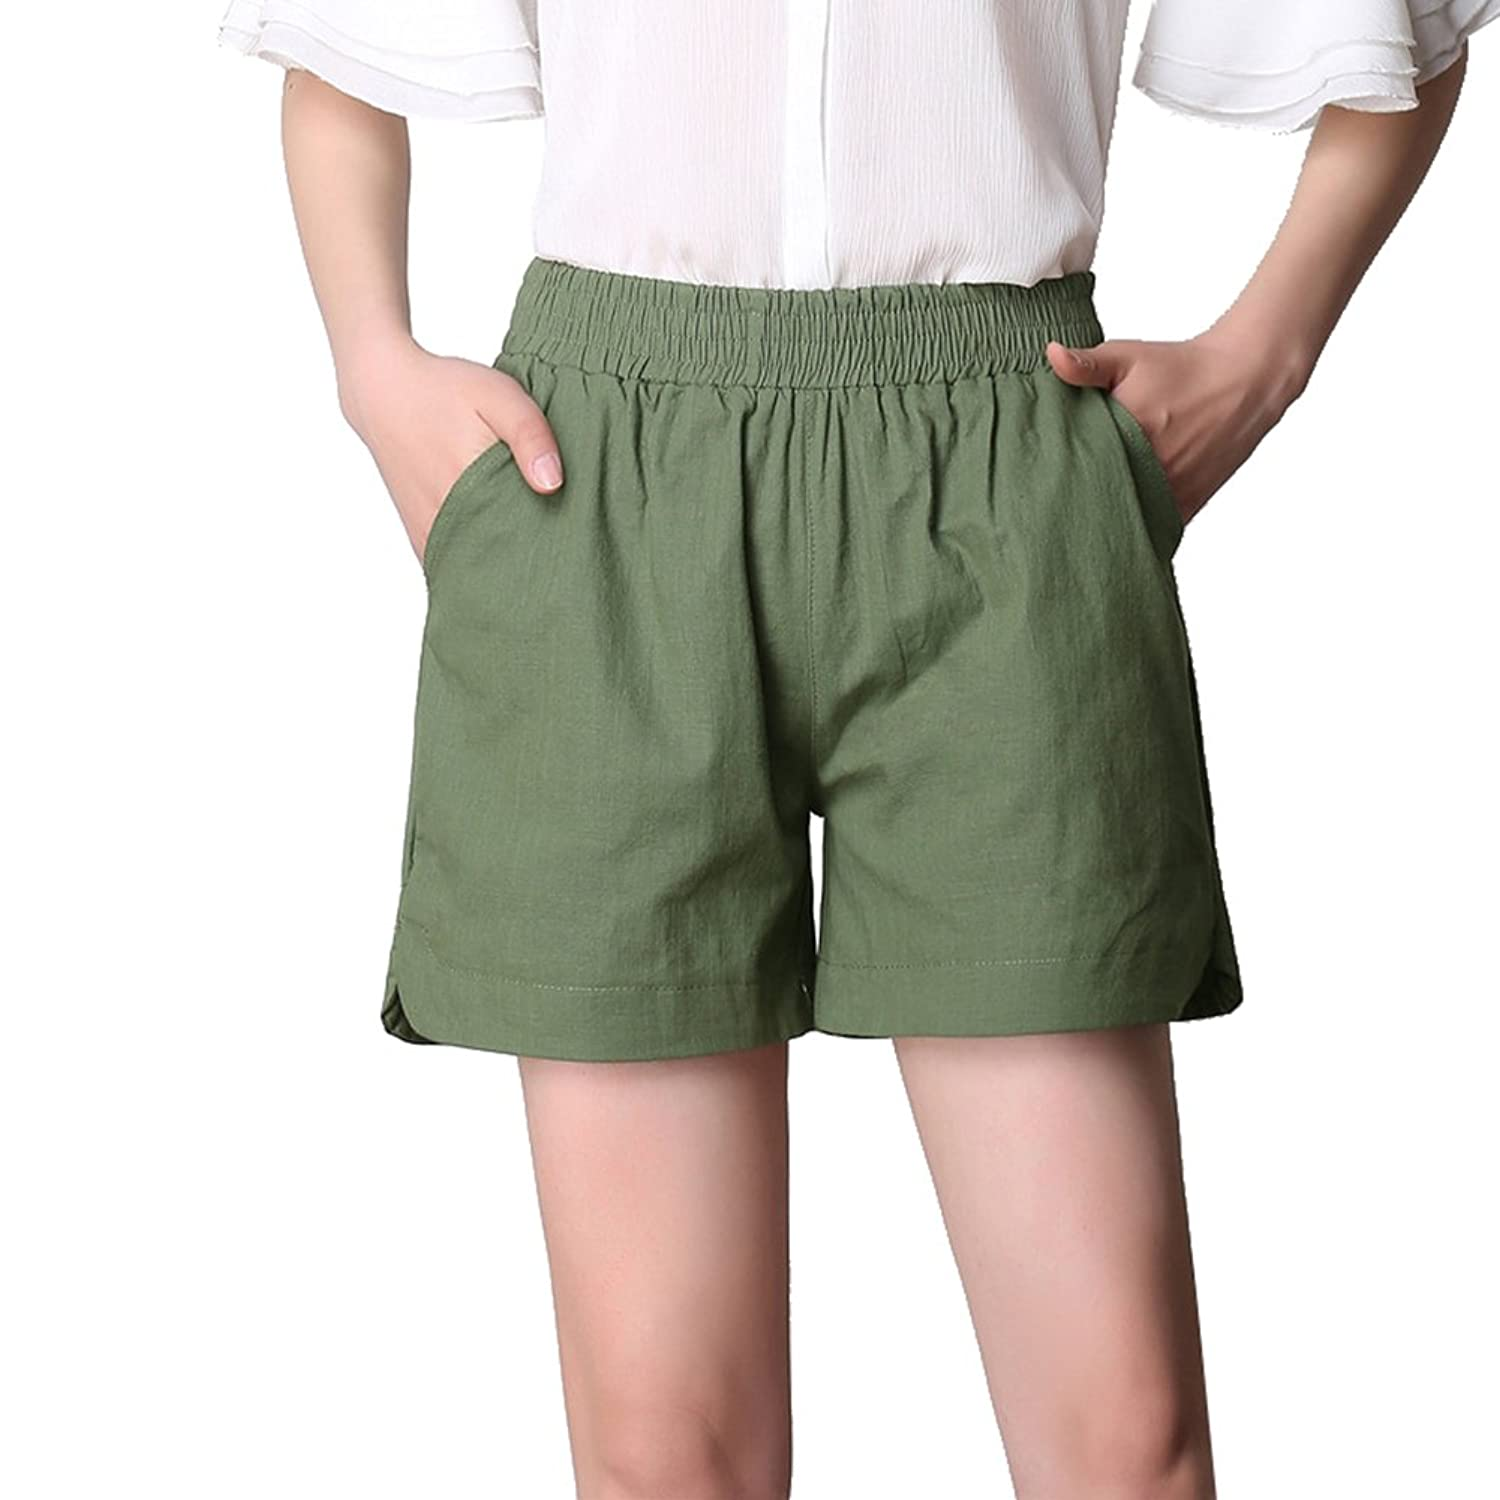 a54315ac562e5 Gihuo Women s Classic Short Cotton Linen Solid Color Beach Hot Pants (Plus  Size)